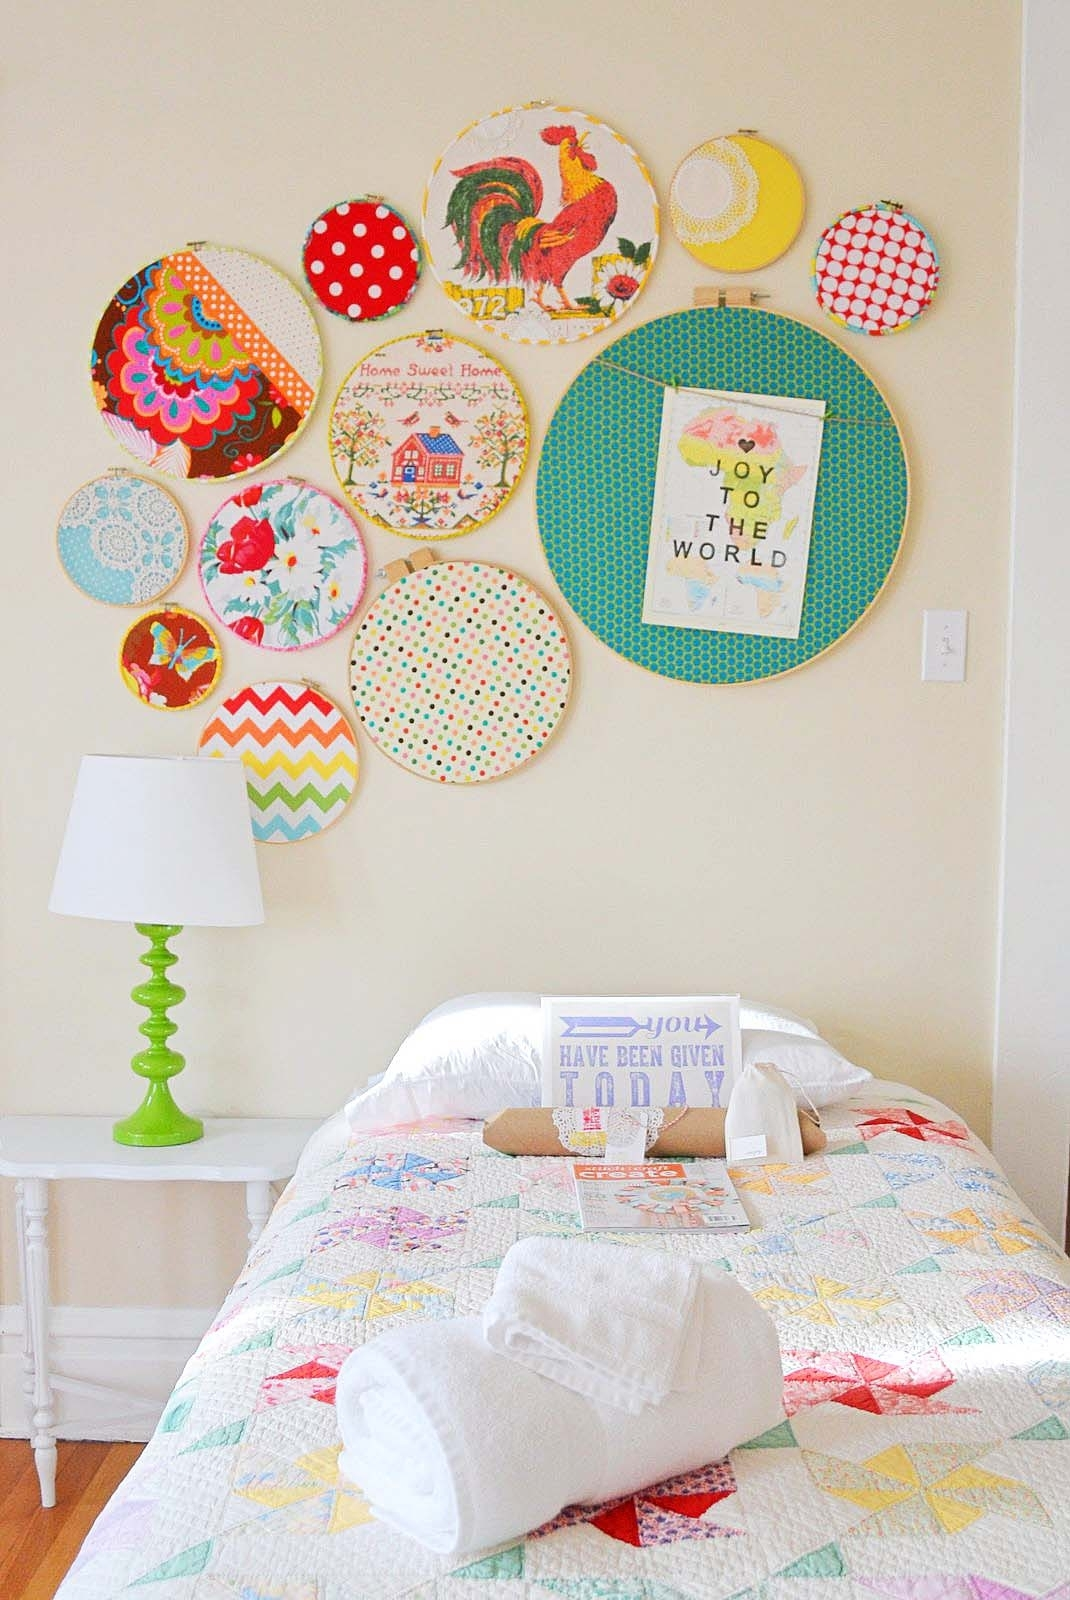 What's All The Hoopla About? – Project Nursery Inside Recent Embroidery Hoop Fabric Wall Art (View 12 of 15)